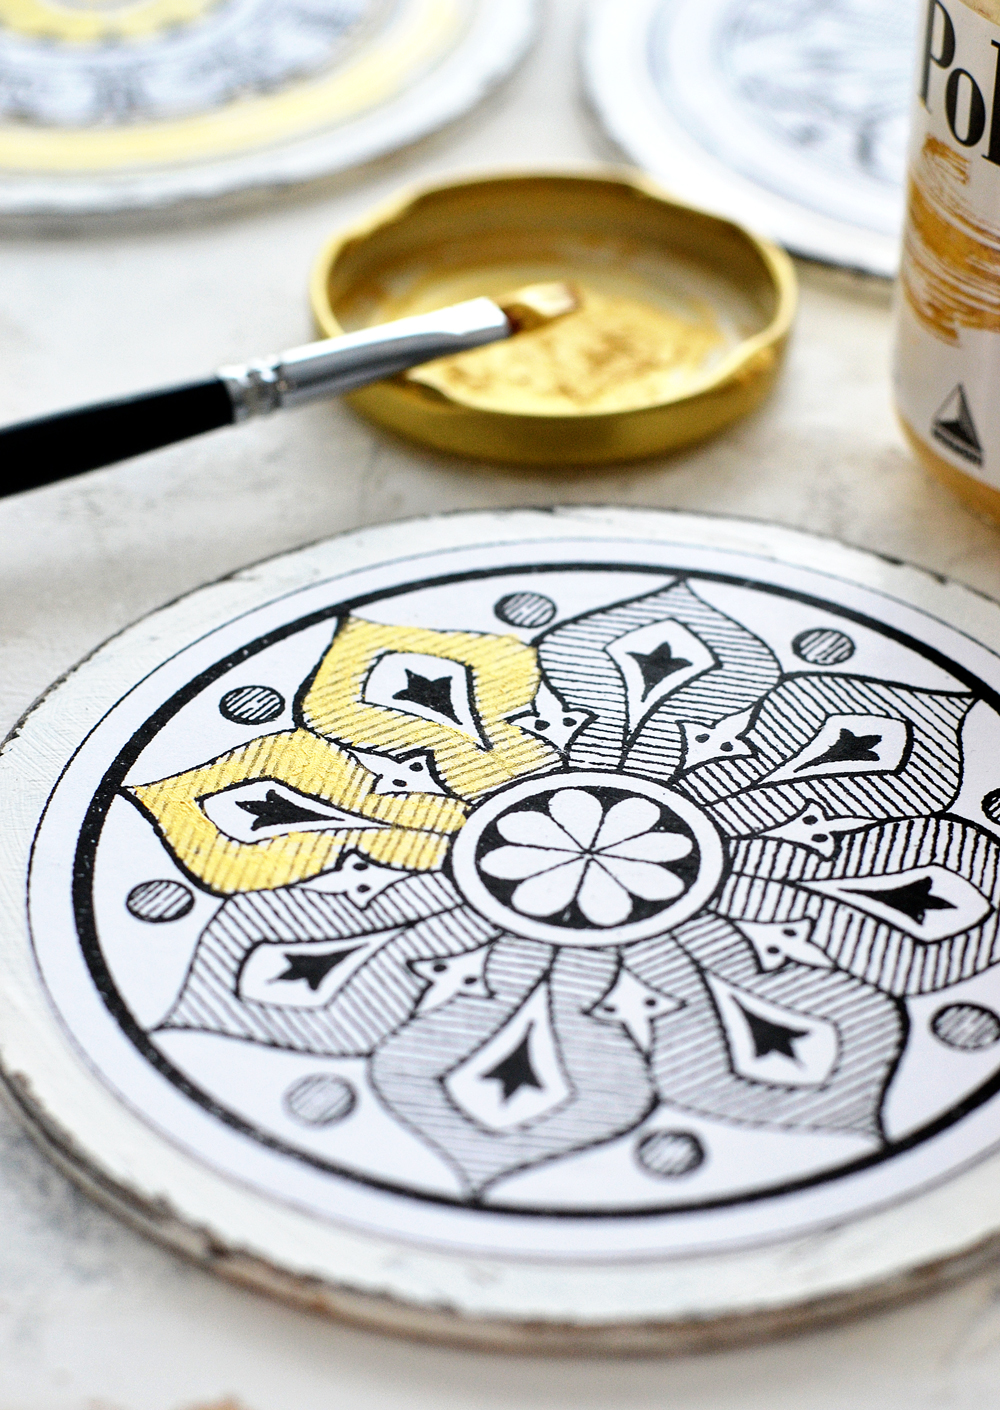 Learn how to make your own DIY Antique Adult Coloring Mandalas and find suggestions on how to uniquely color them and even add chic gold touches